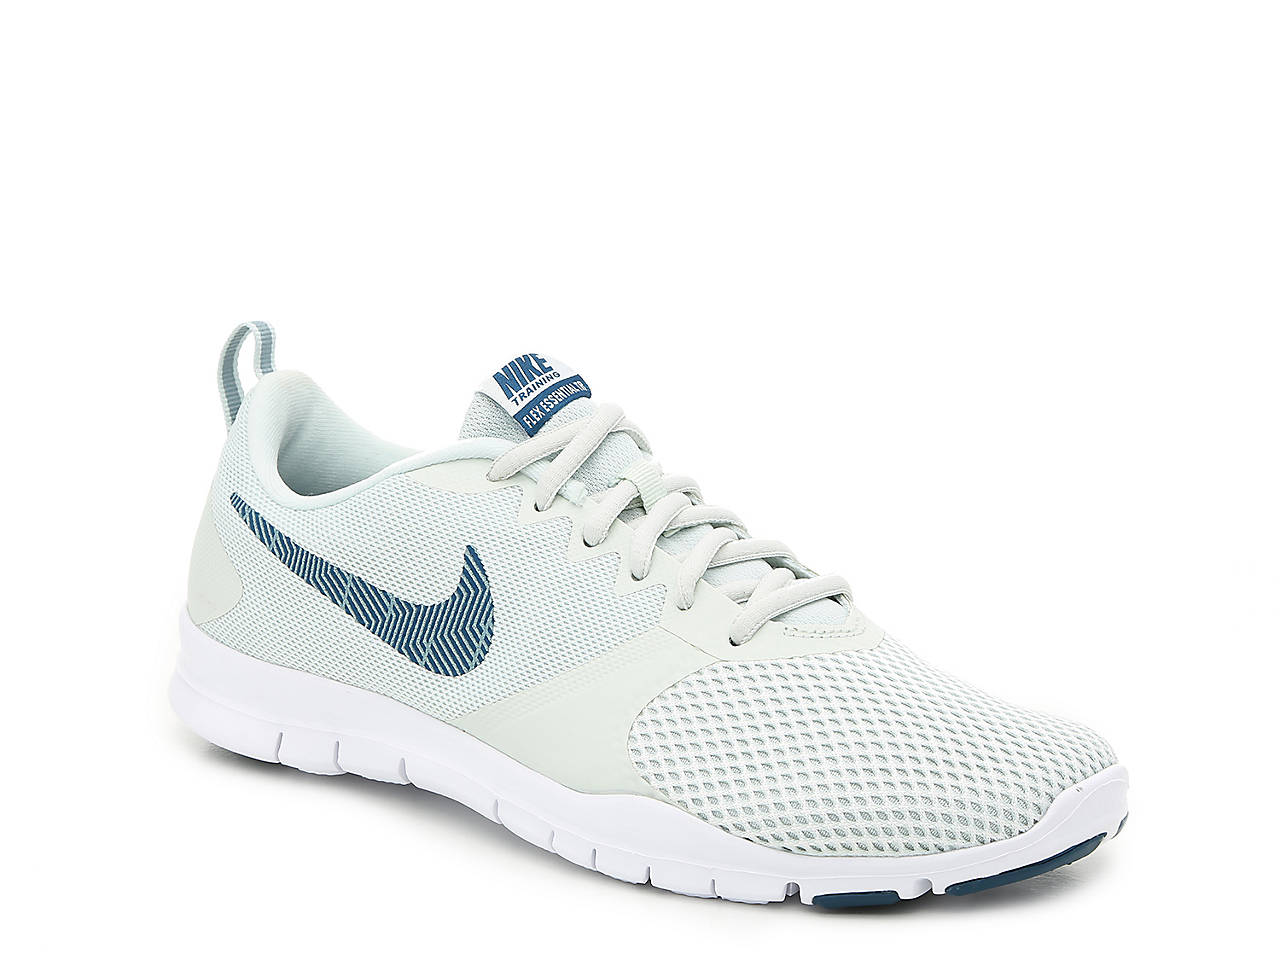 67c161b9359c9 Nike Flex Essential TR Lightweight Training Shoe - Women s Women s ...